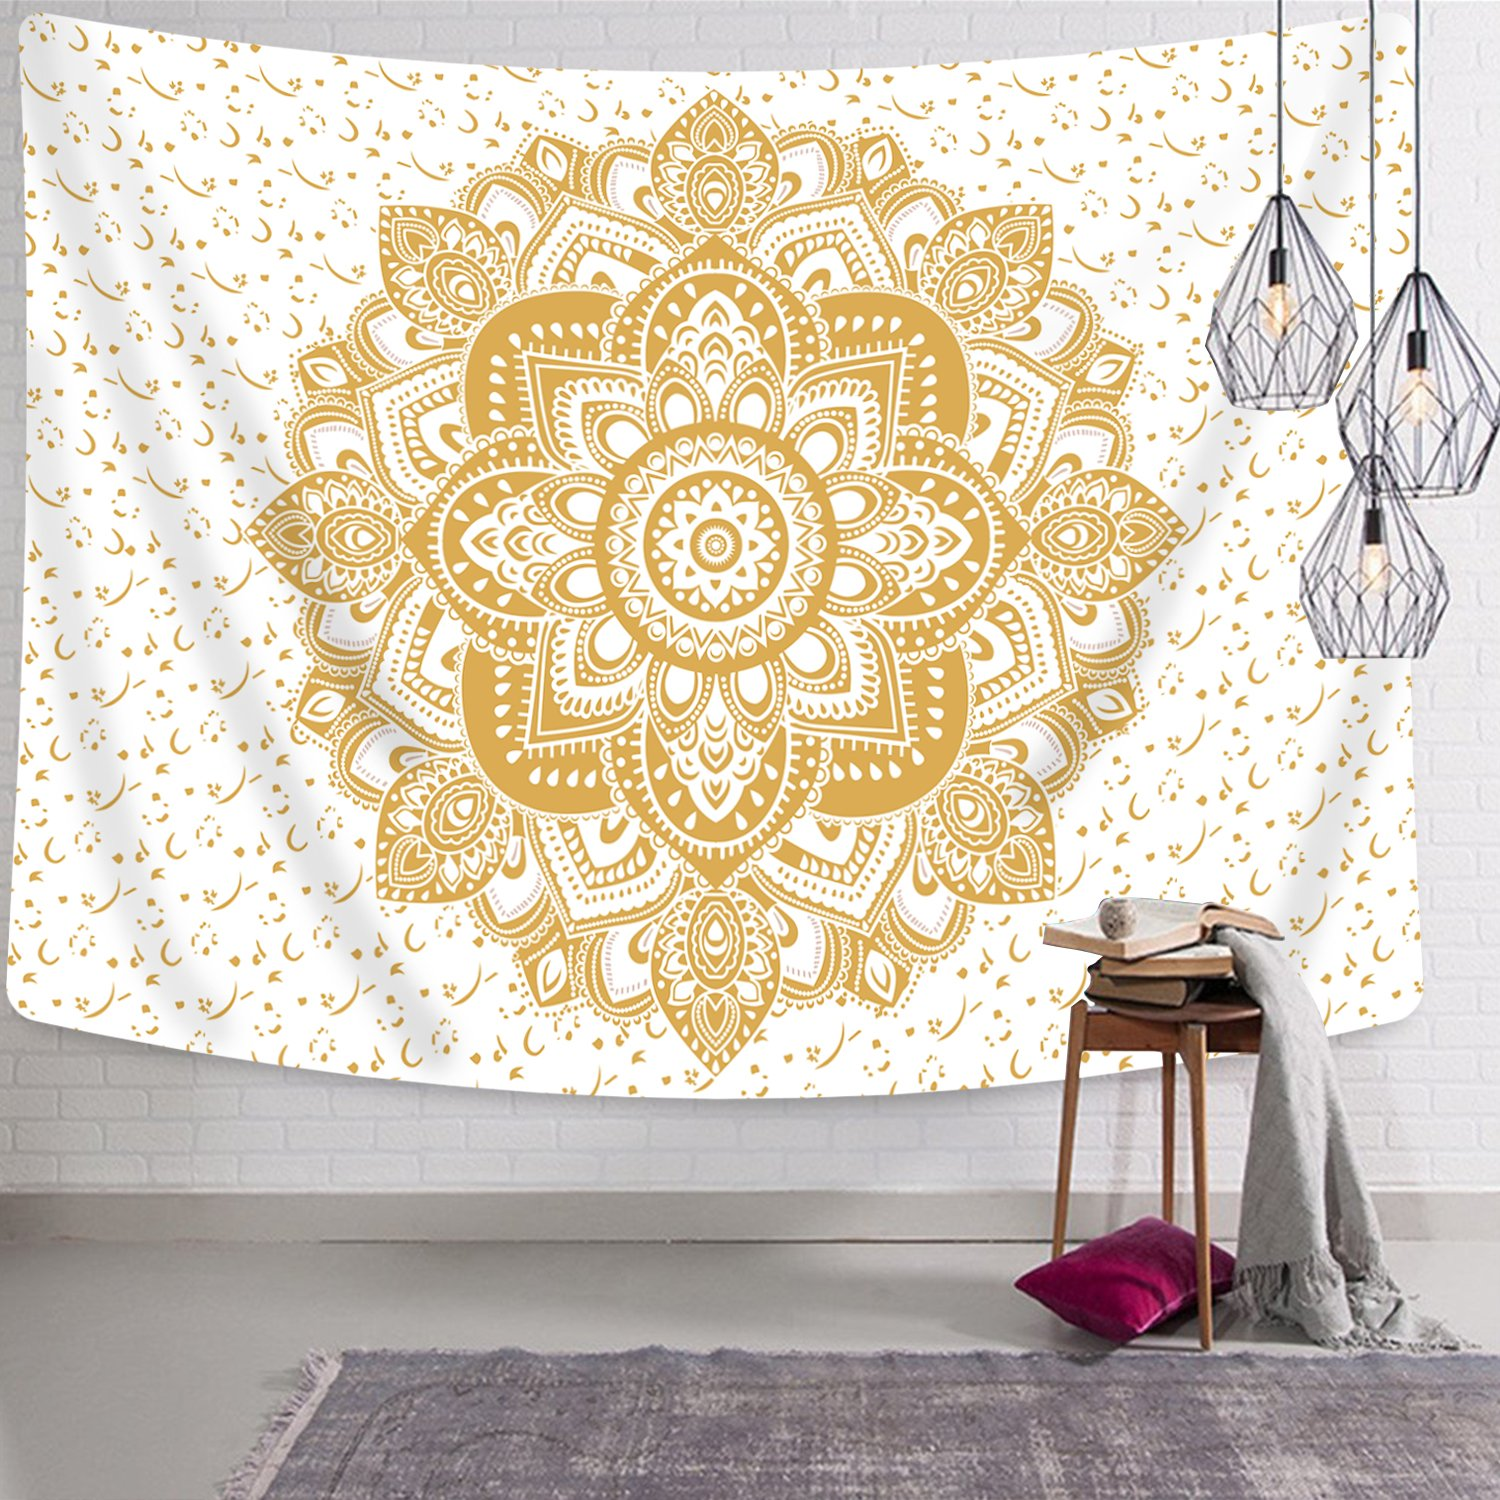 Amazon.com: Tapestry Wall Hanging Mandala Wall Tapestry White and ...